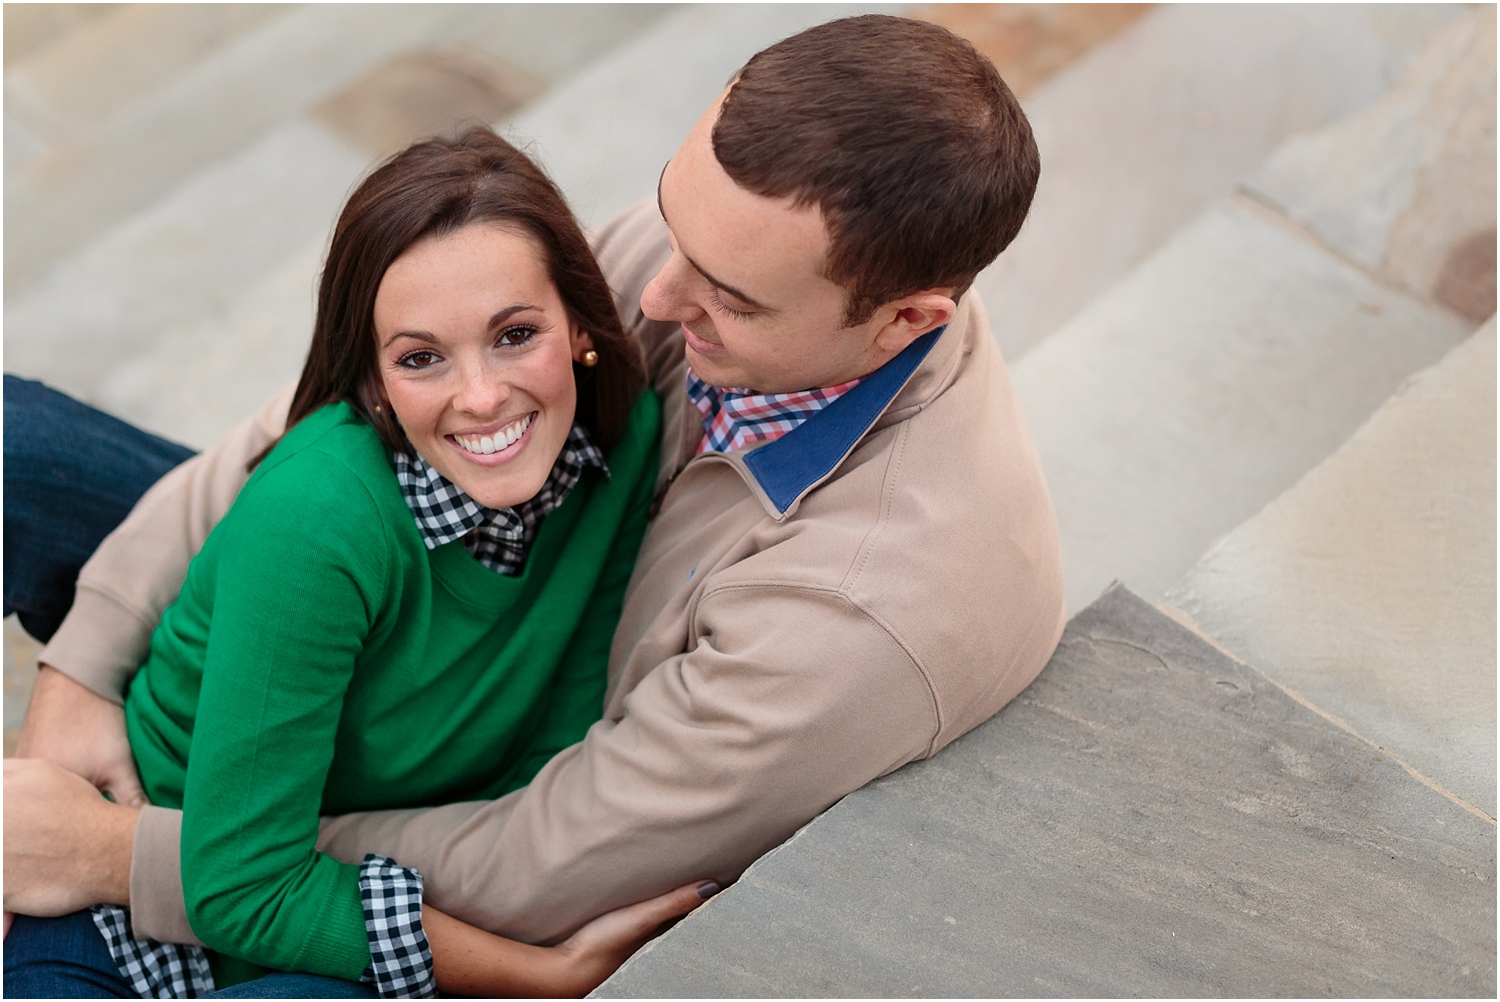 fall-engagement-session-downtown-greenville-photography-21_blog.jpg